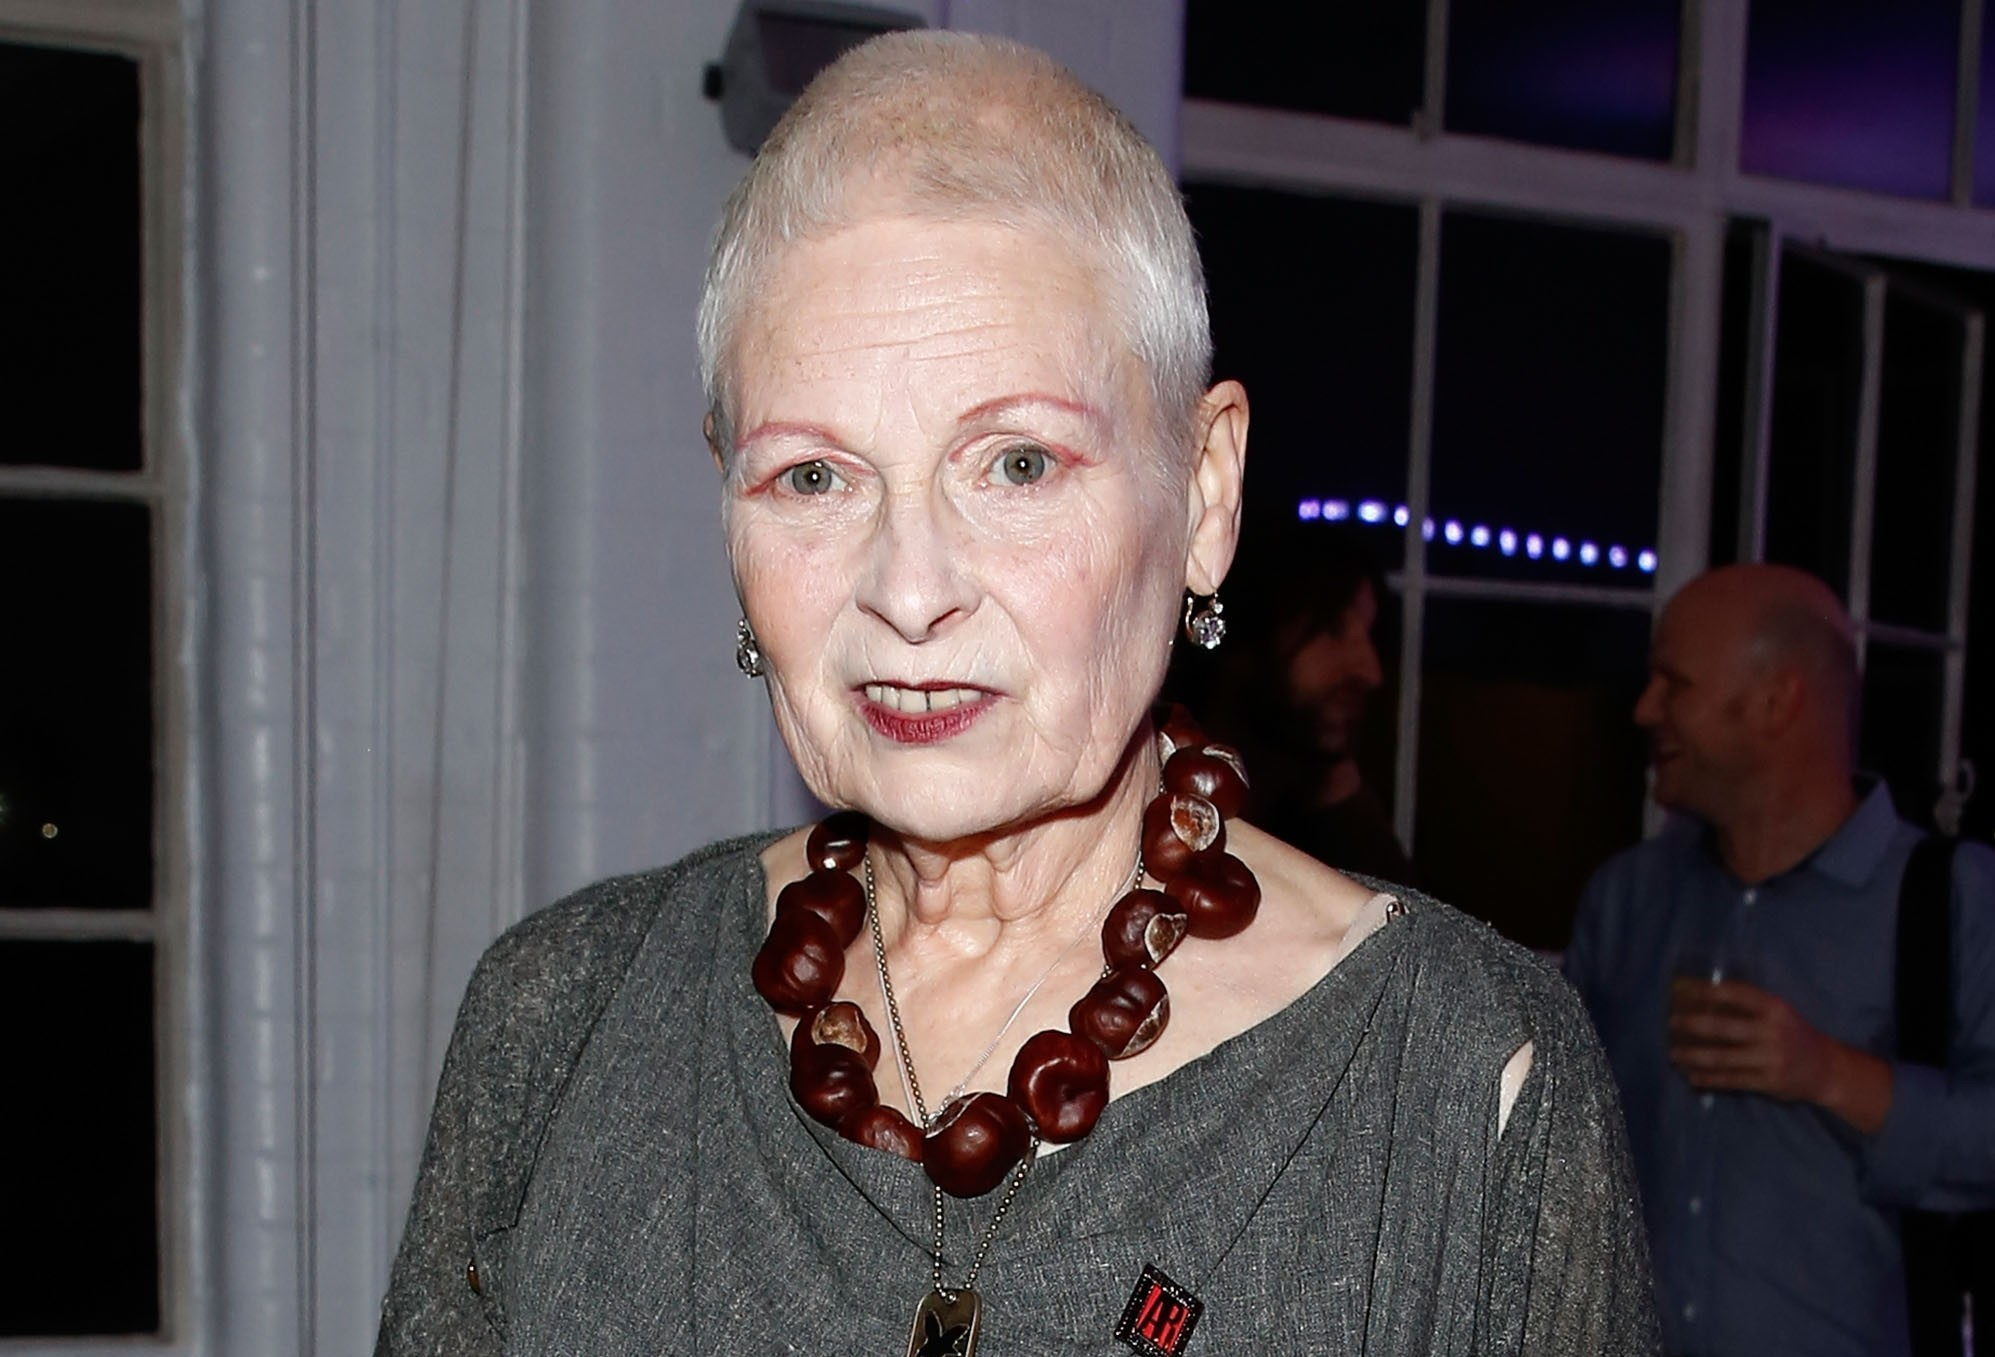 Vivienne Westwood at the solar powered party. Photo by Dave Bennett at the Off the Grid solar powered party